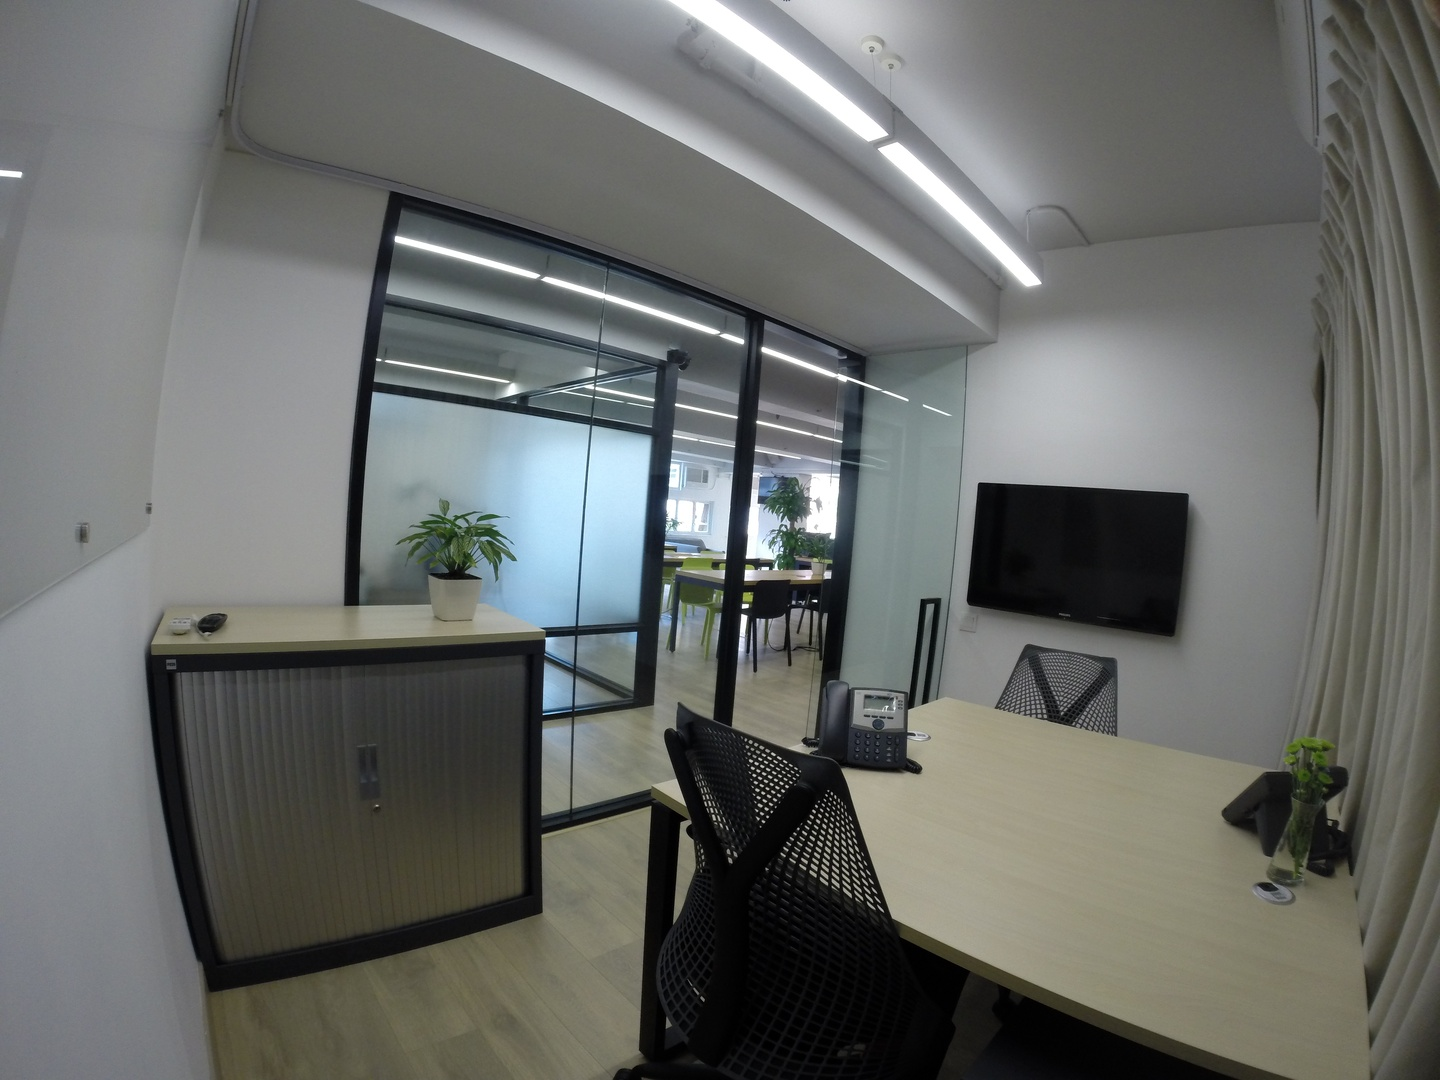 Hong Kong conference rooms Meetingraum Wynd Co-Working Space - Private Office for 2 image 1